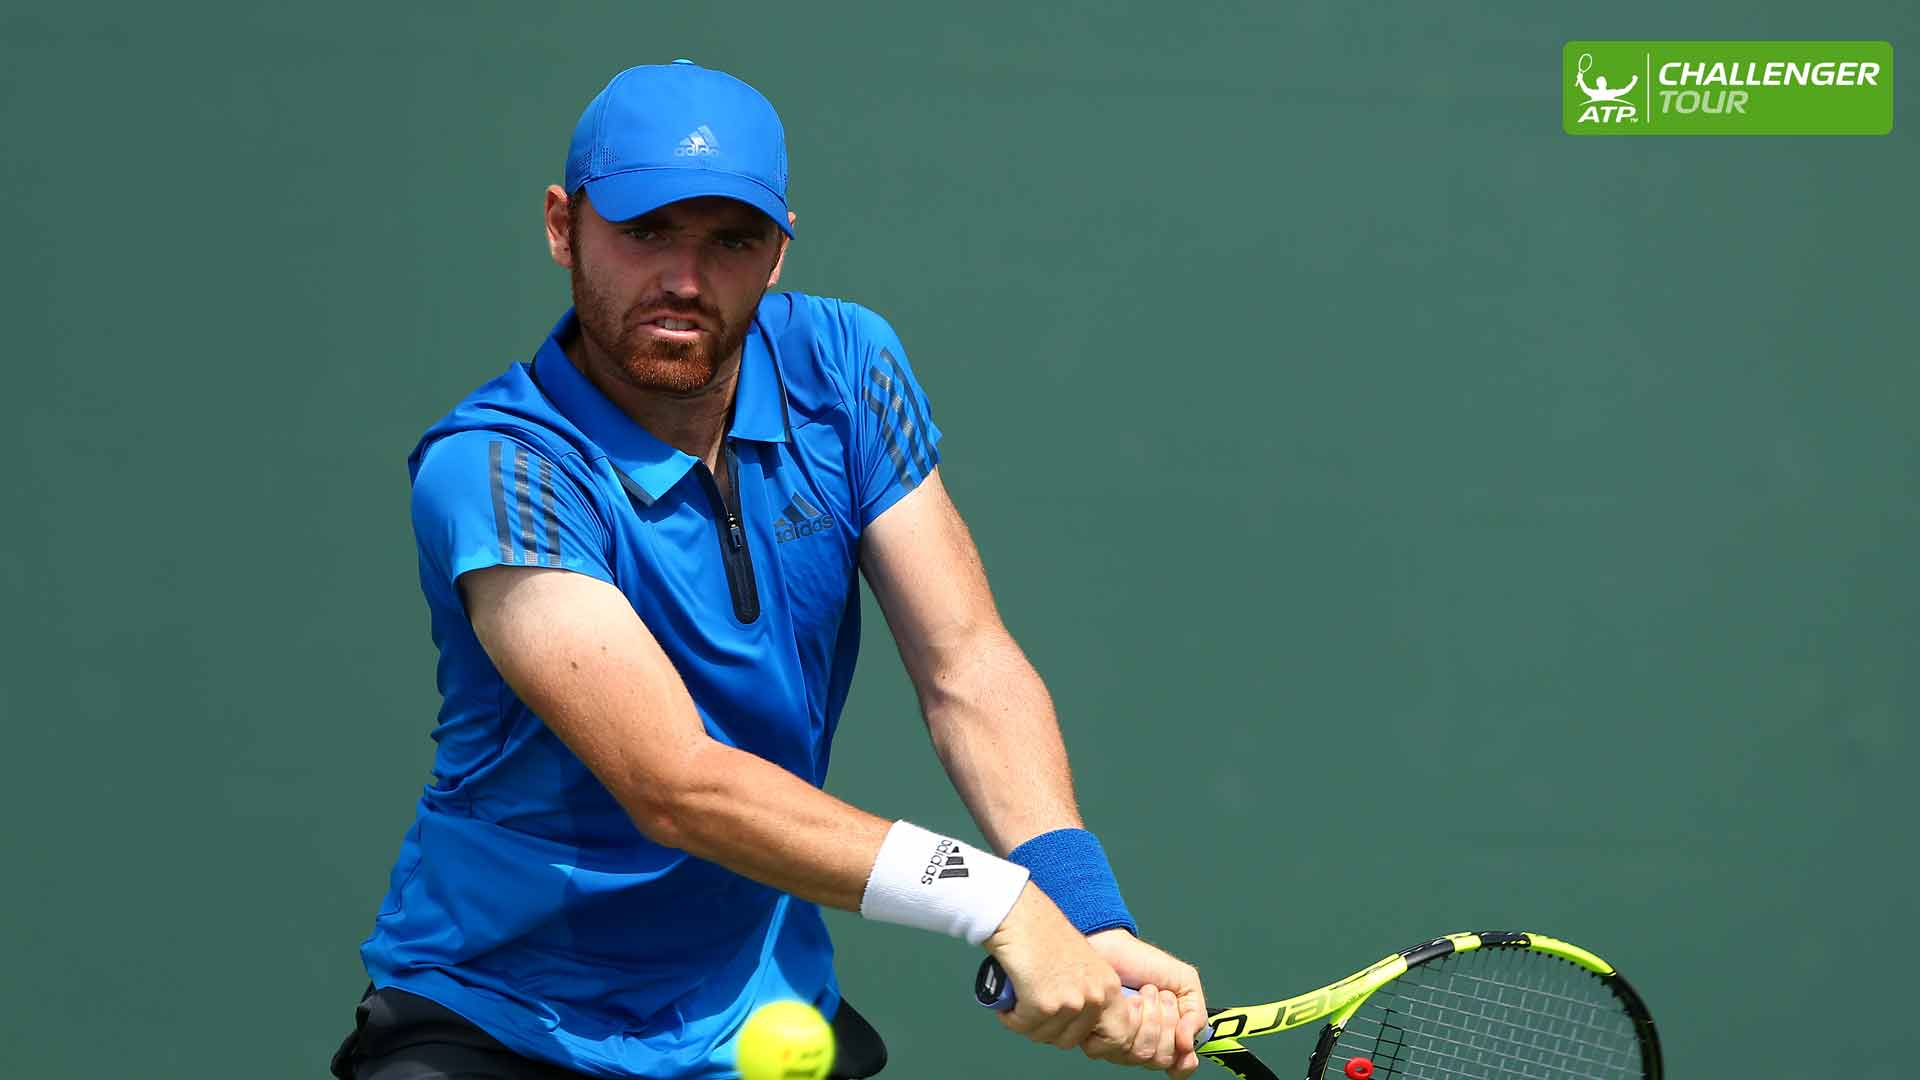 Bjorn Fratangelo is the fourth seed at the ATP Challenger Tour event in Surbiton.